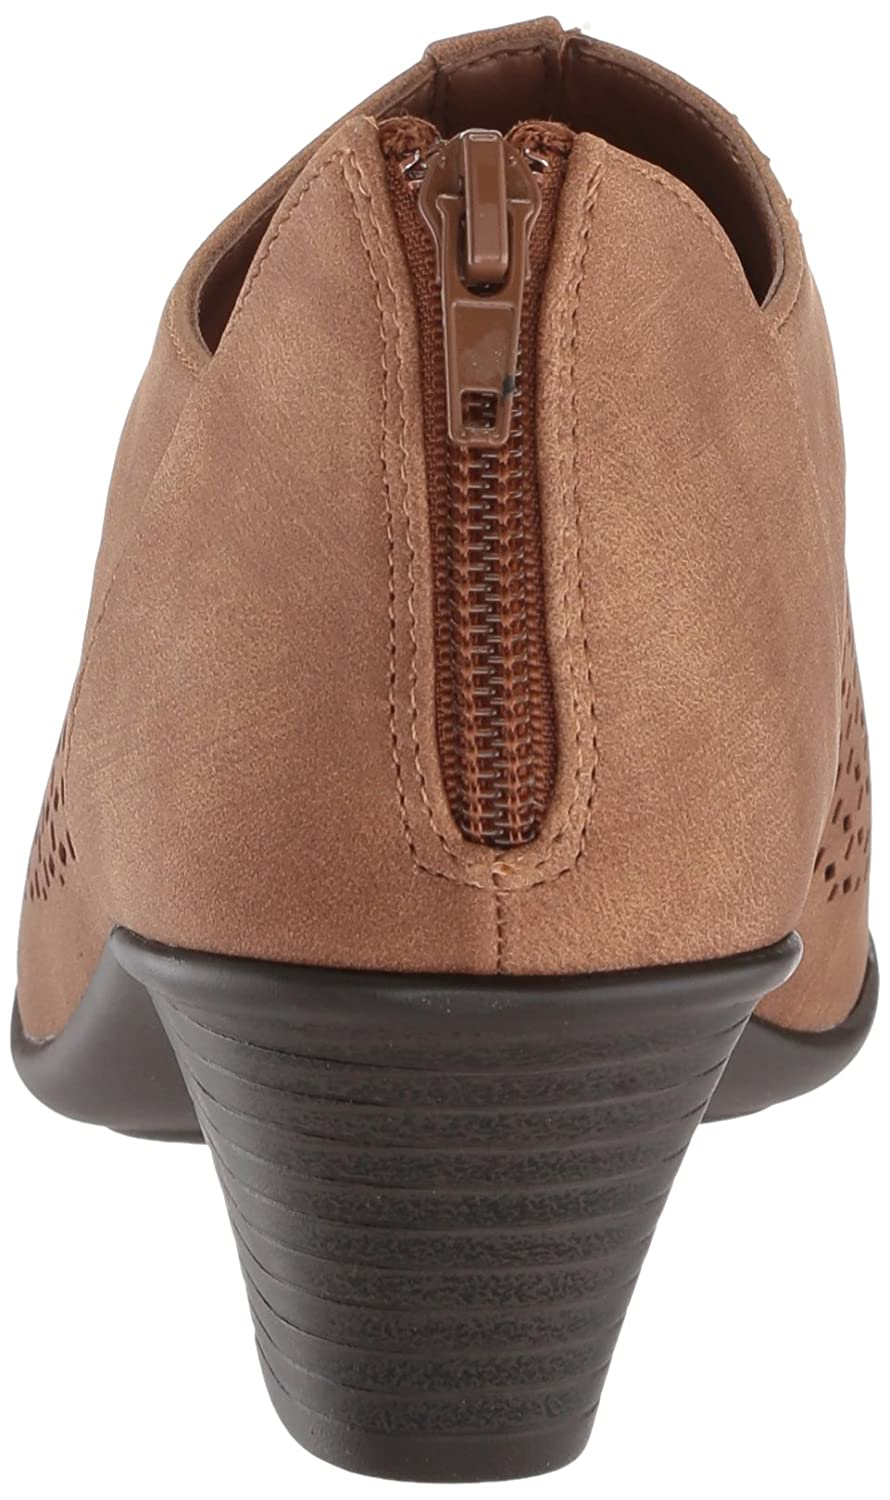 Easy Street Women's 8 Steff Ankle Boot B077ZKV7NH 8 Women's N US|Tan 7bb345